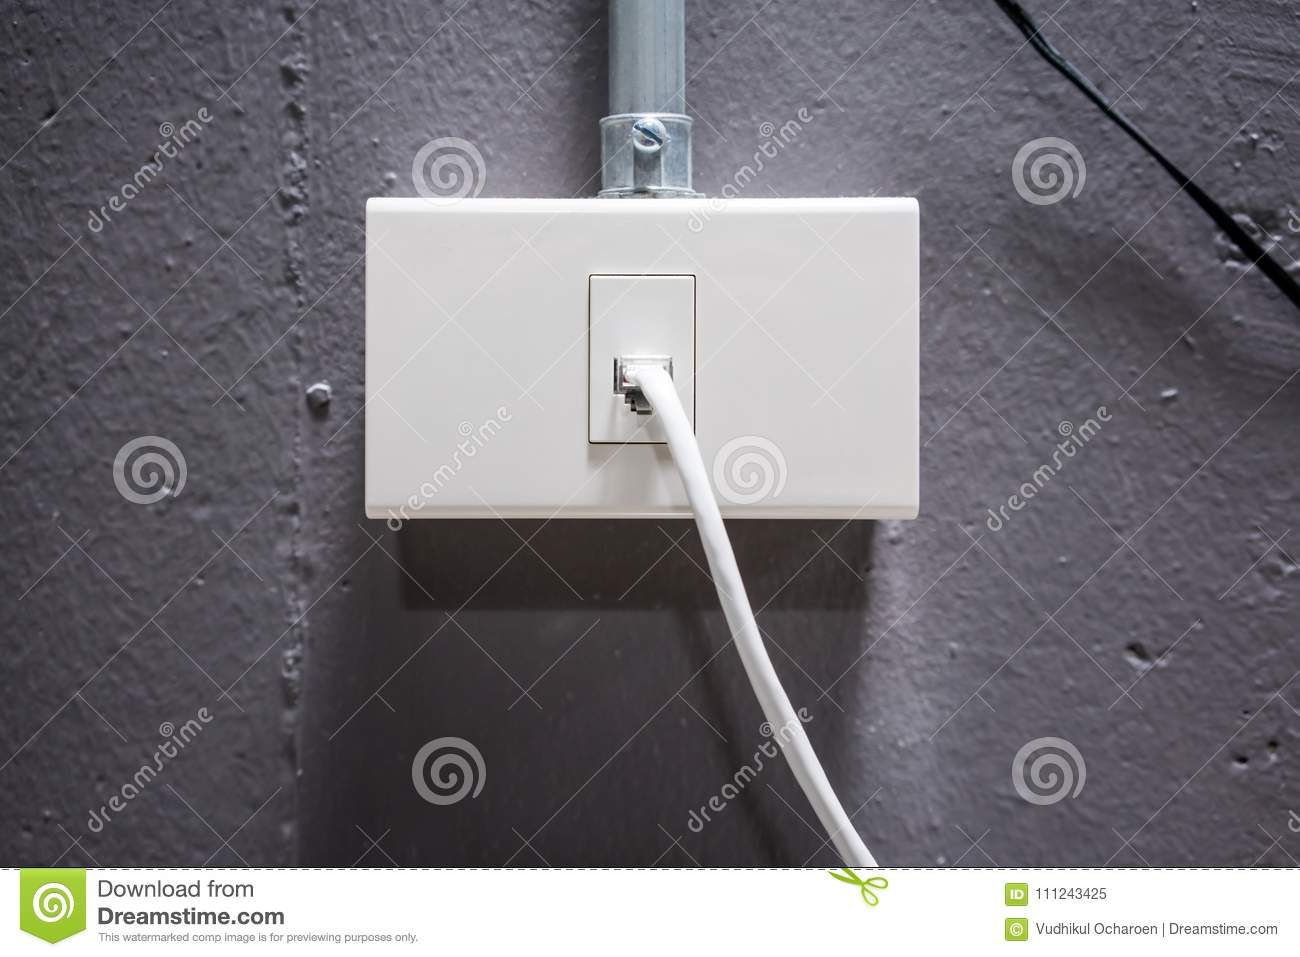 Internet Cable With White Network Outlet Against Grey ...